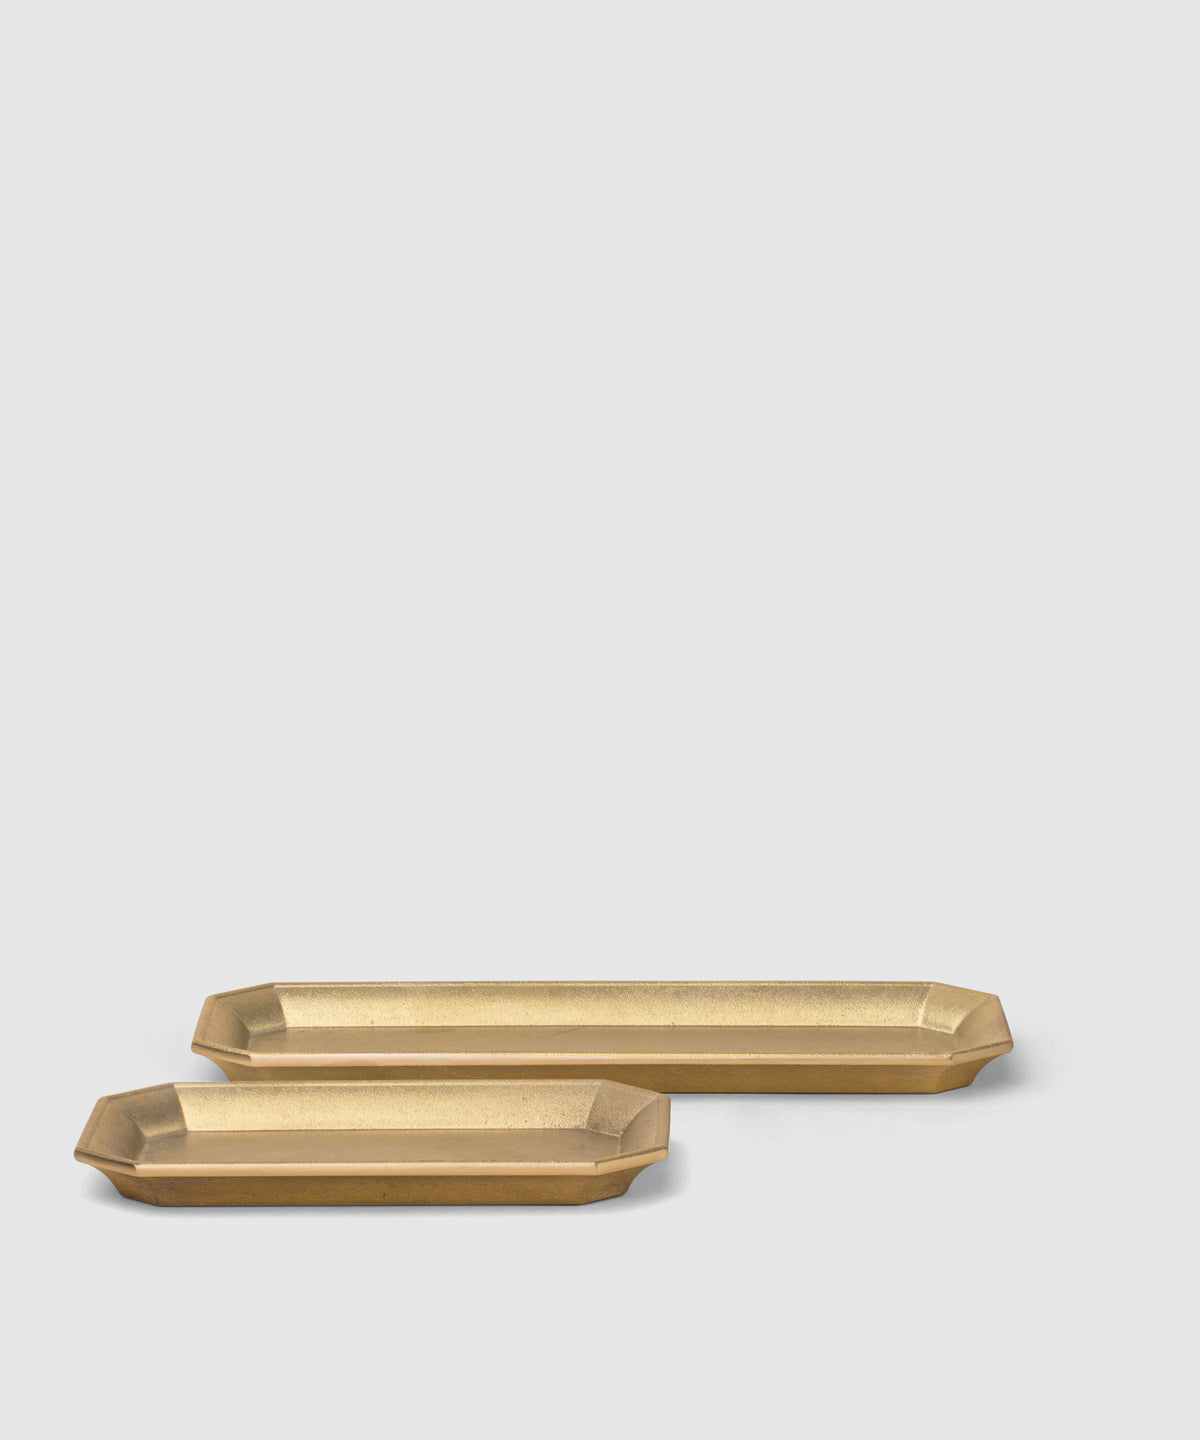 Tidy Brass Organizing Tray – Large